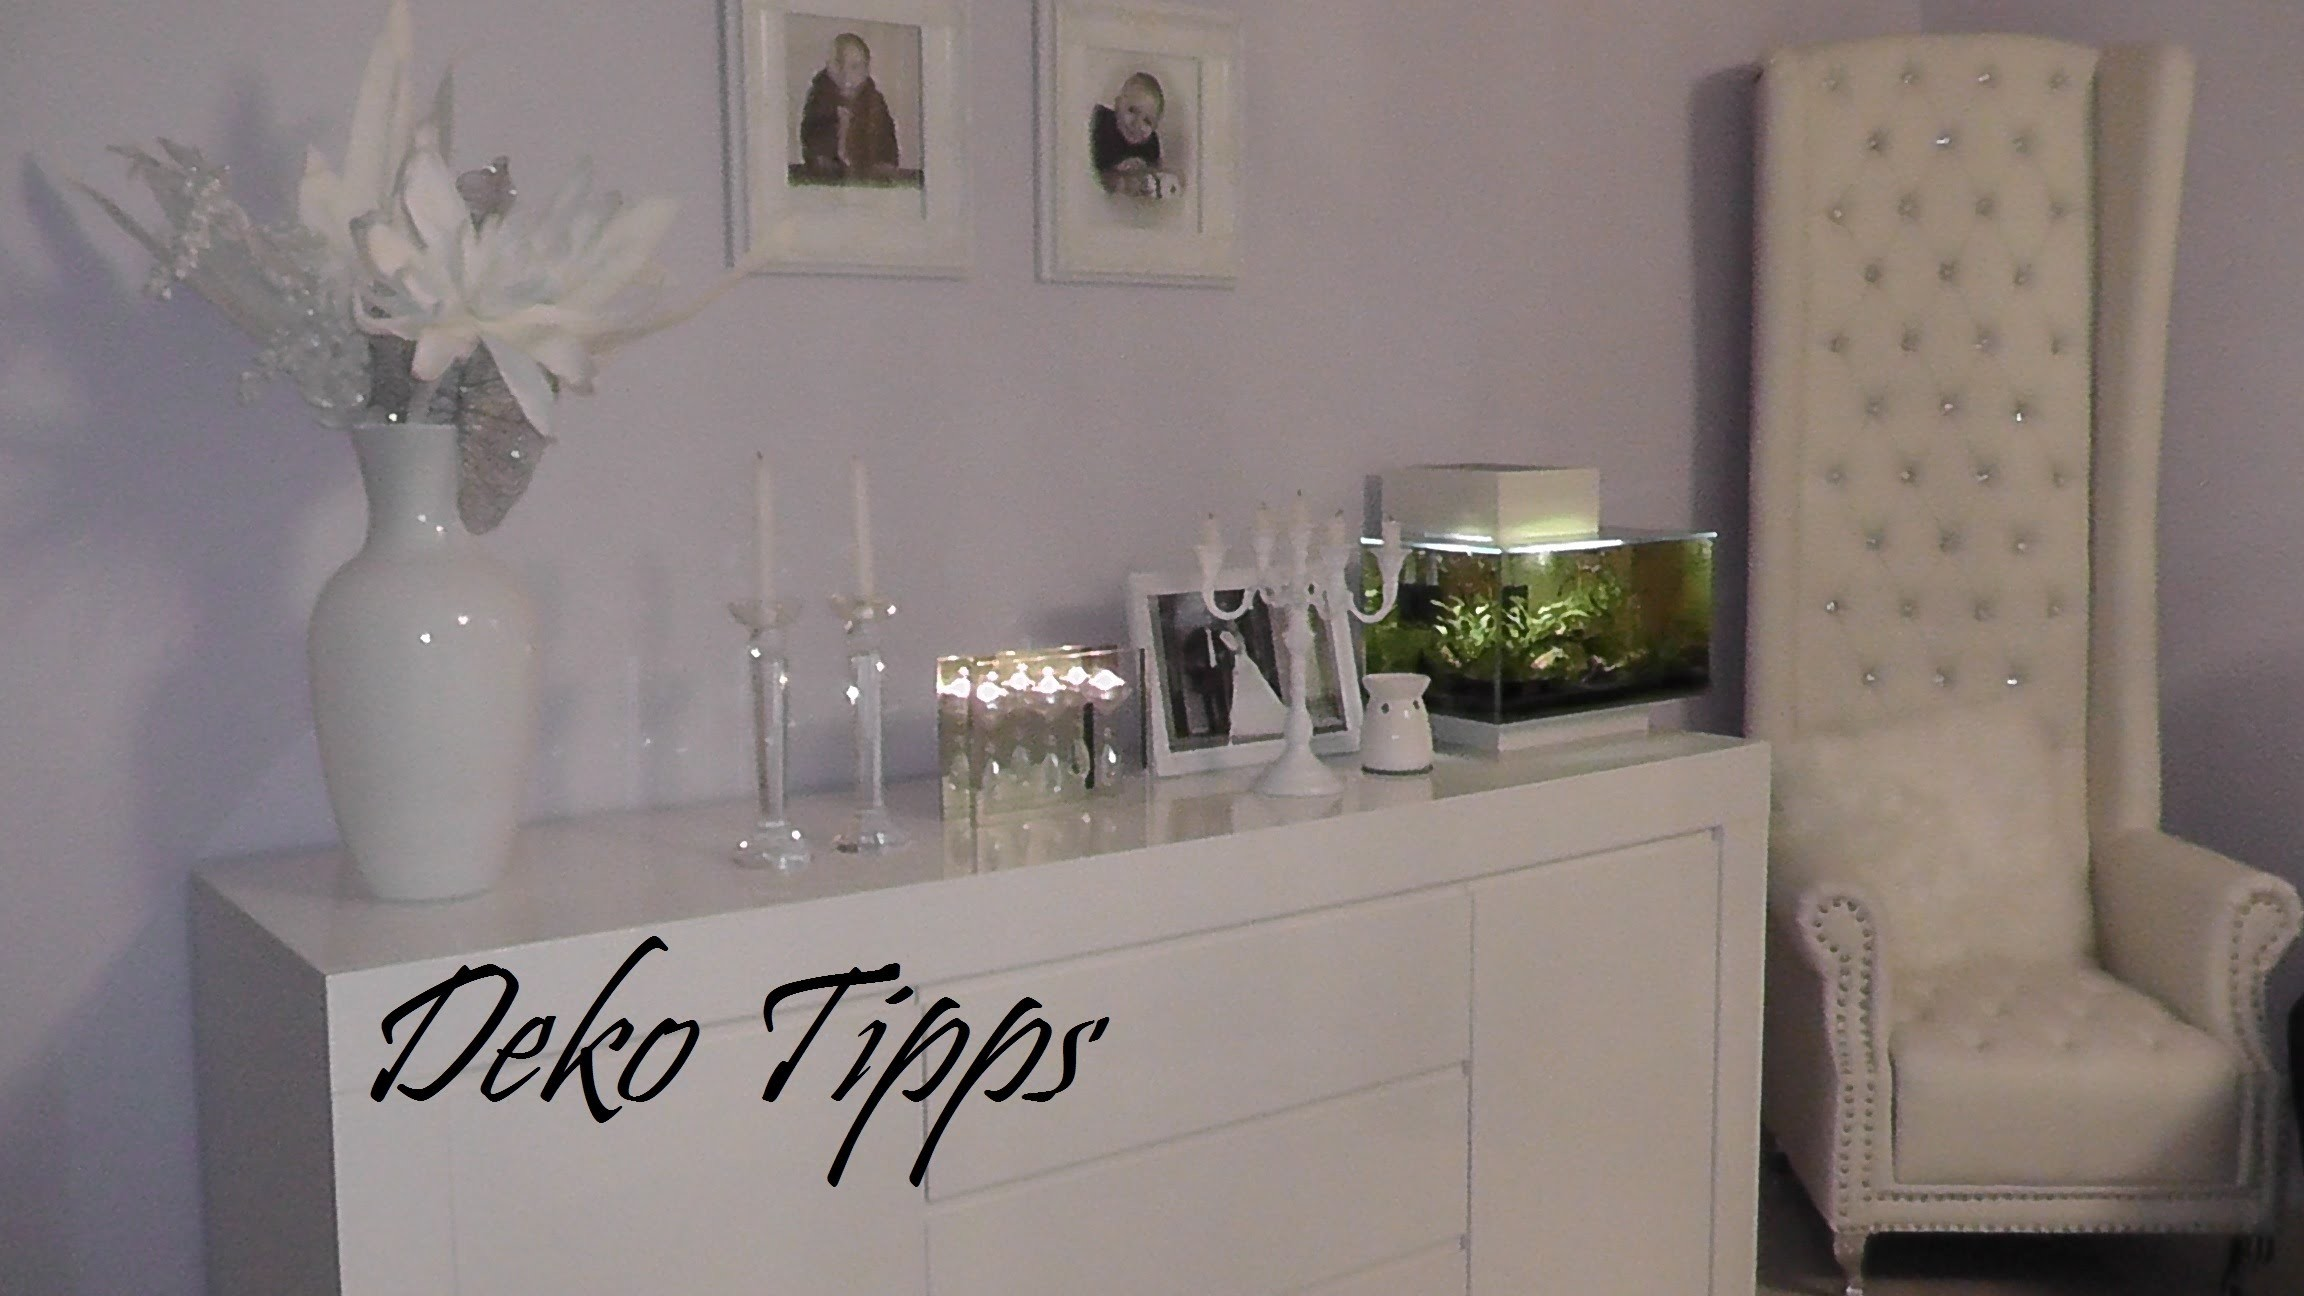 Room tour. Deko Tipps. New Home Decor, Kare,Ikea